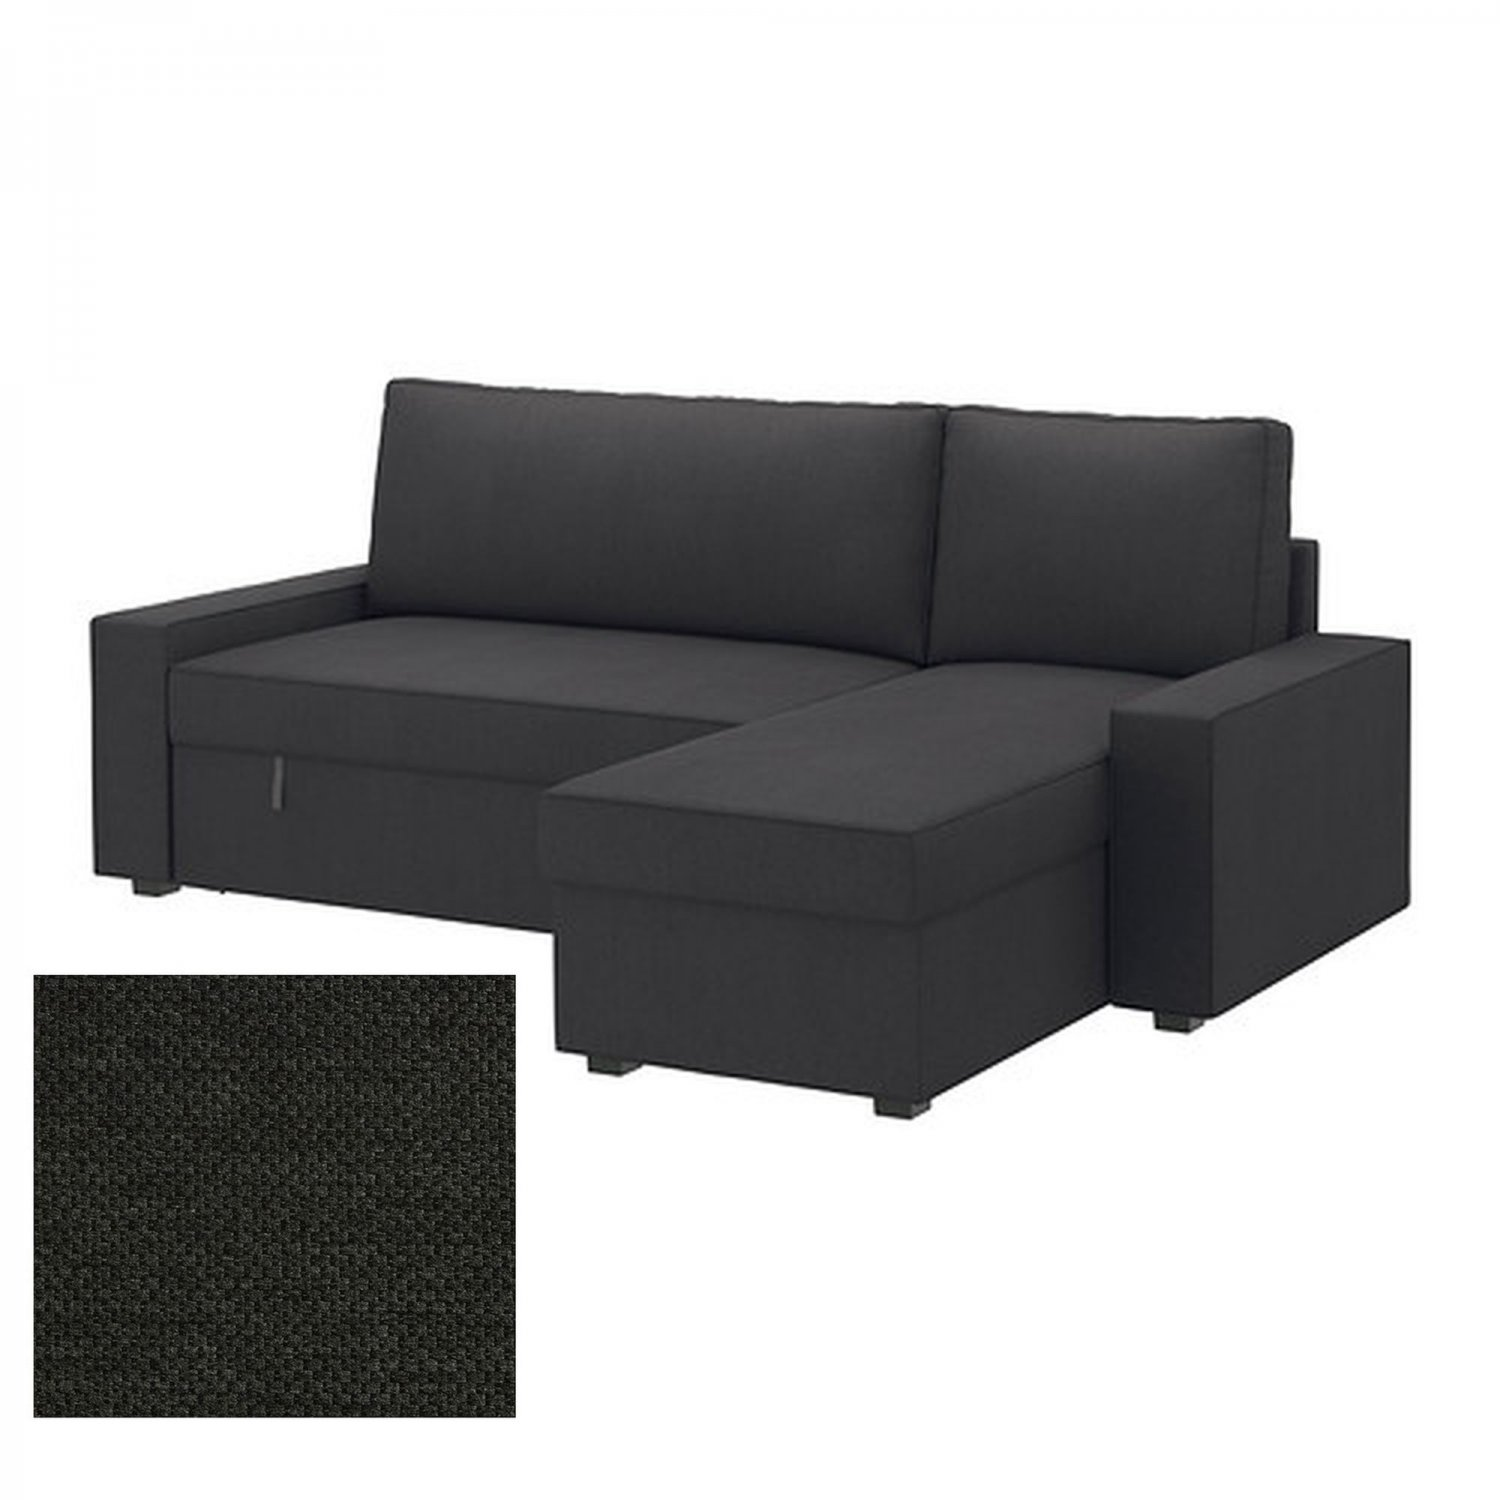 Ikea vilasund sofa bed with chaise longue slipcover for Chaise longue sofabed